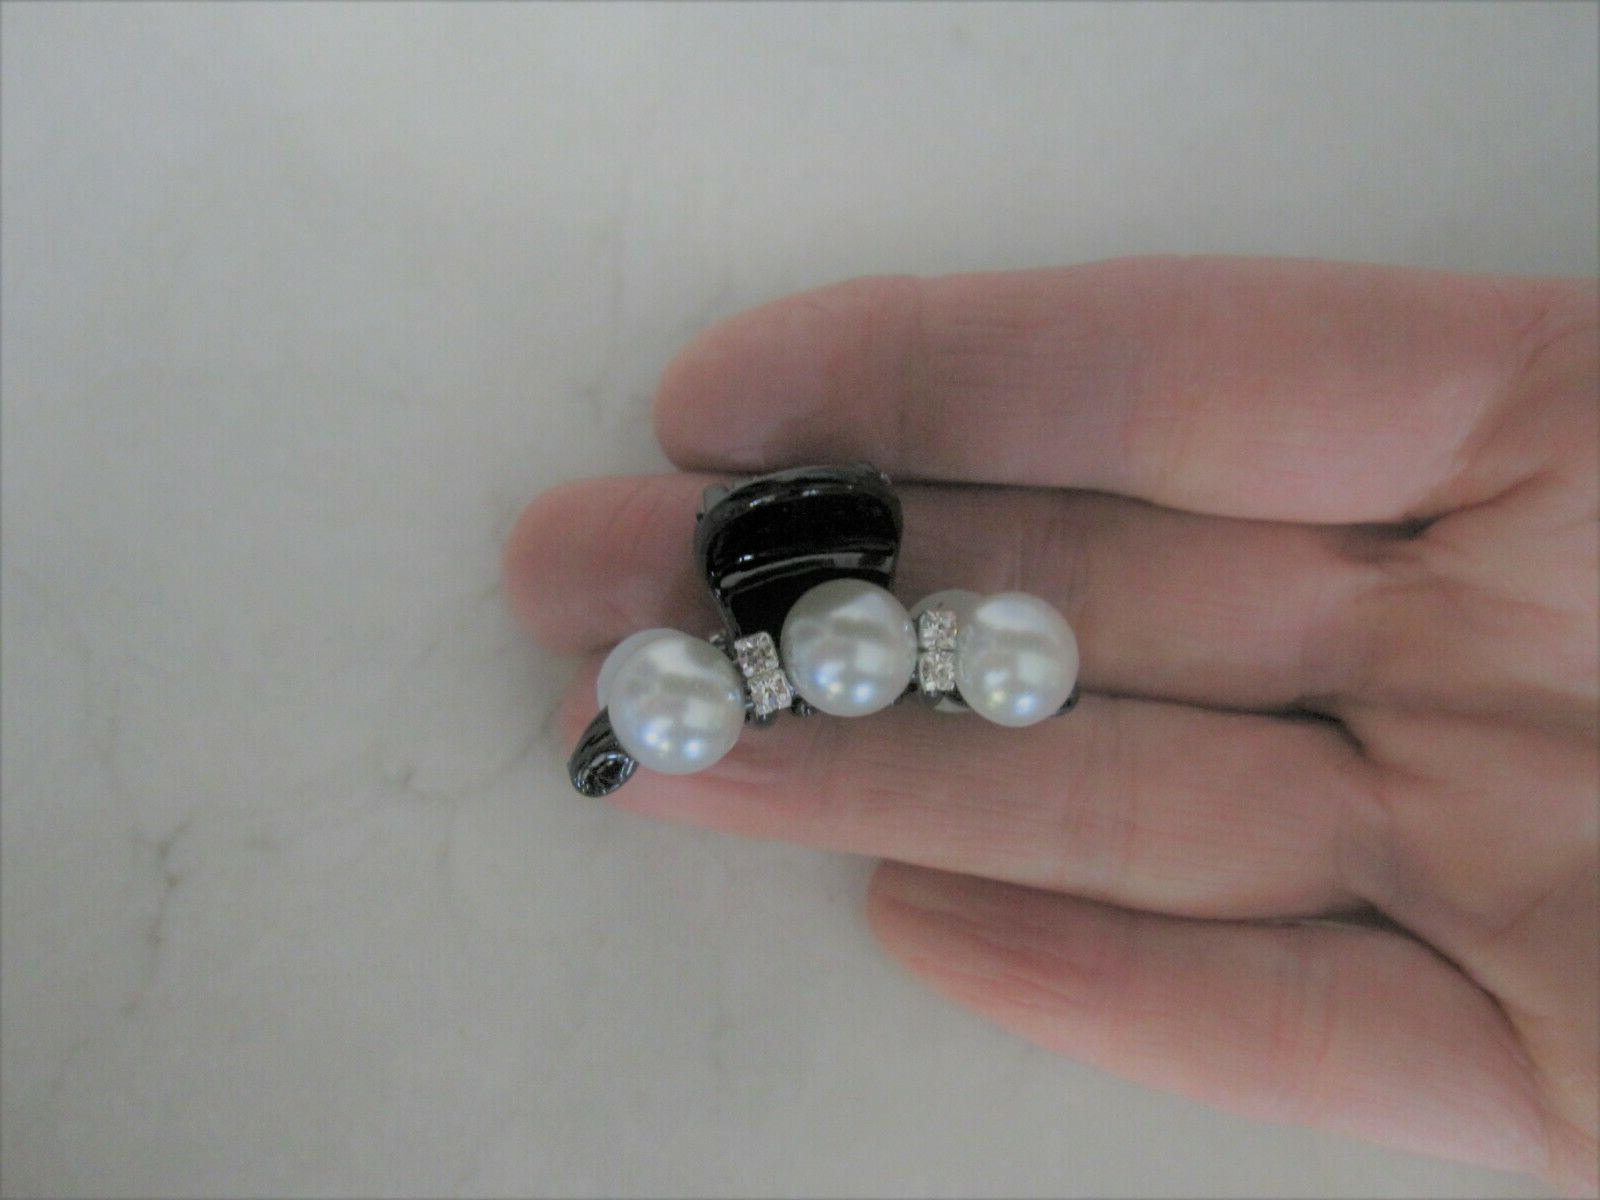 Small mini claw clip fine, thin hair with pearls and crystals